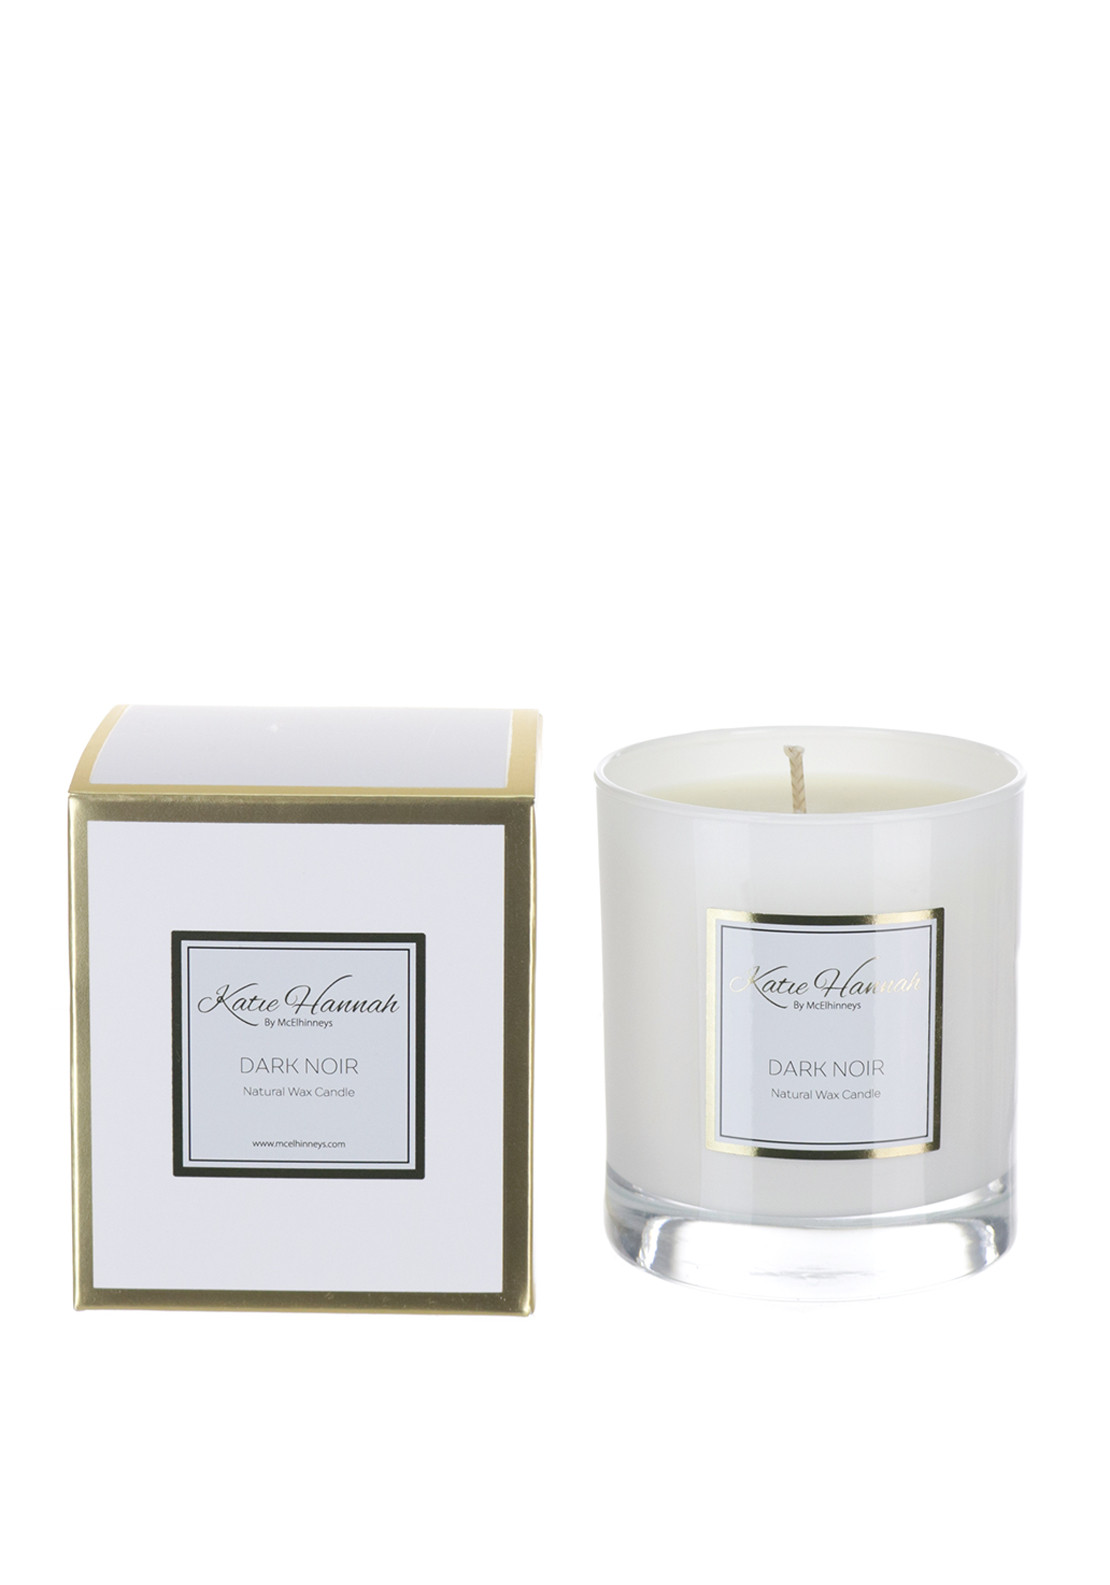 Katie Hannah By McElhinneys Dark Noir Natural Wax Candle